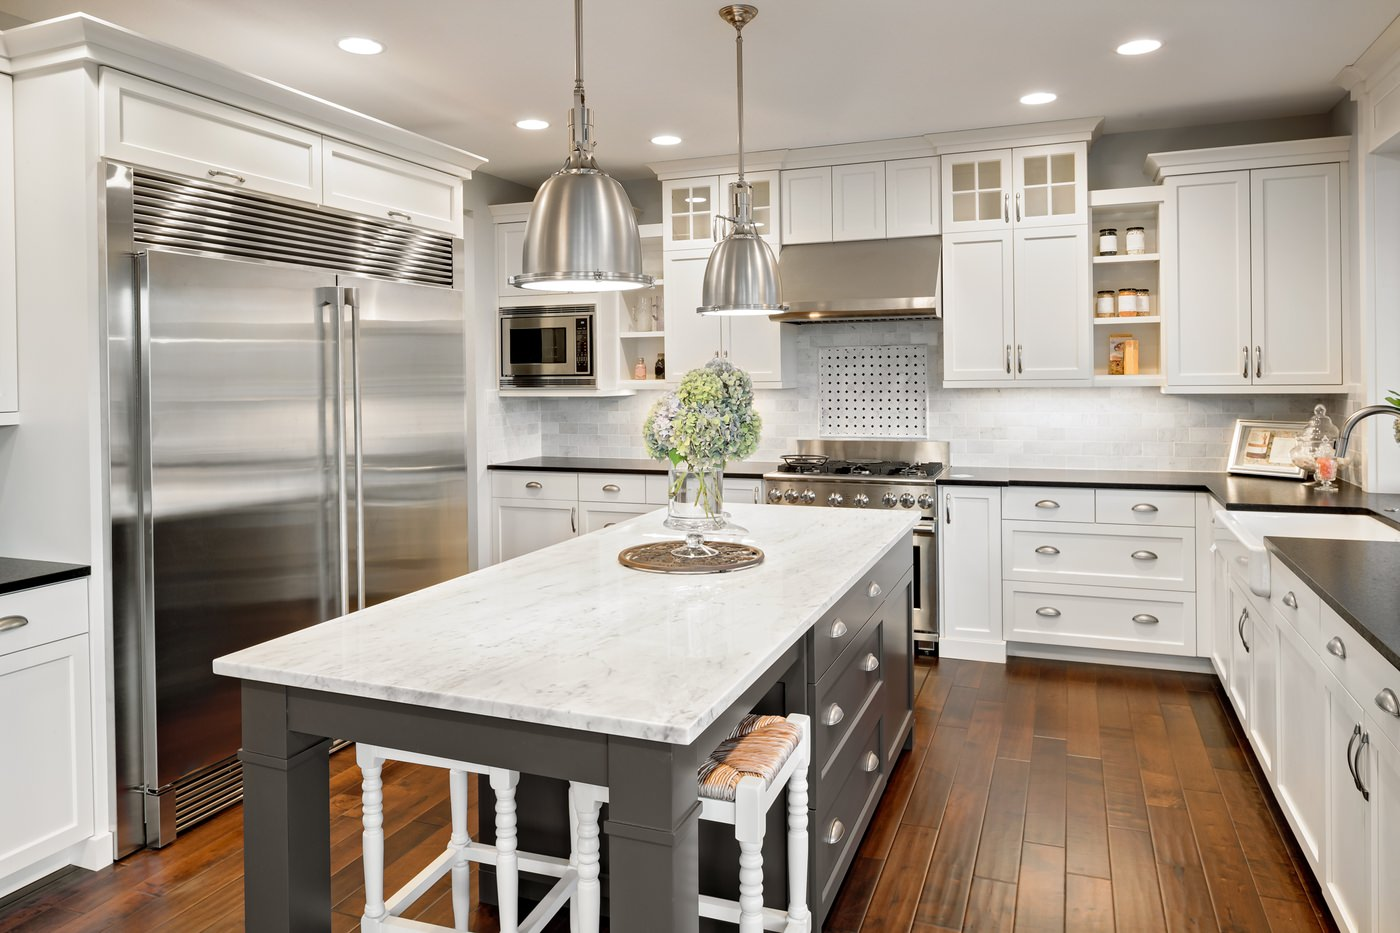 Kitchens woodward renovations what kind of kitchen suits your needs workwithnaturefo